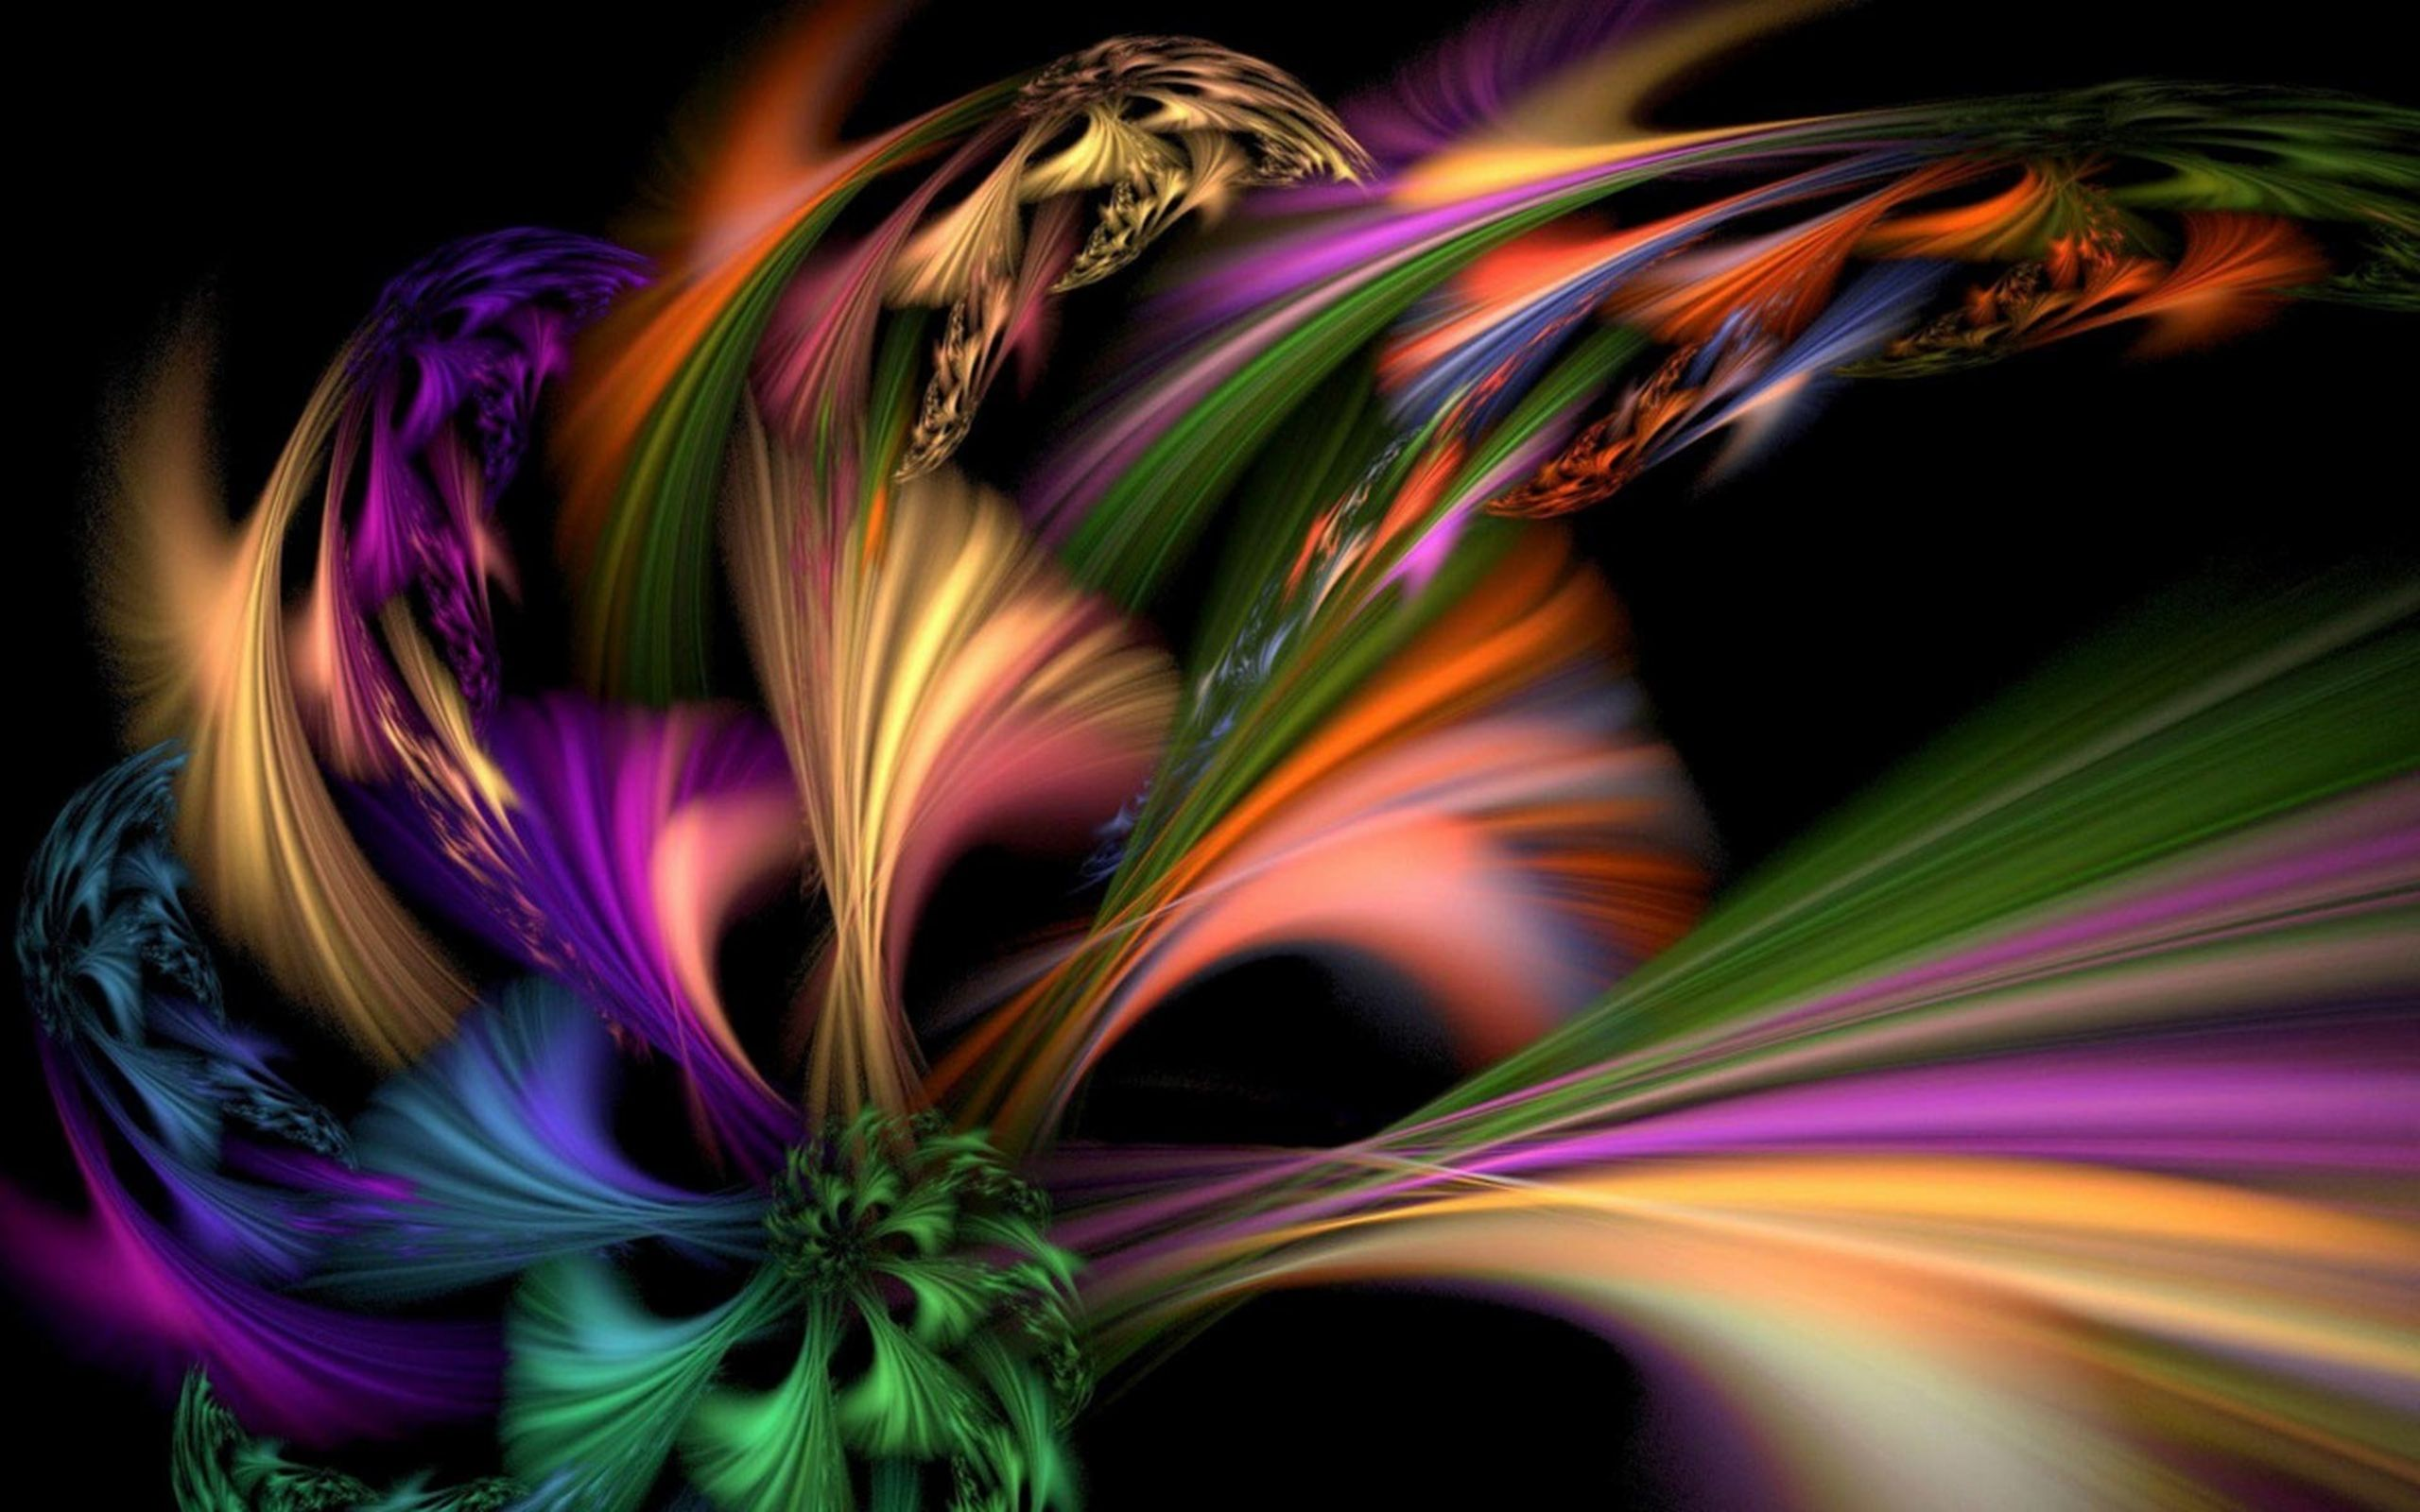 Color Burst Abstract | Abstract Desktop Wallpapers | Free background images, Abstract images ...